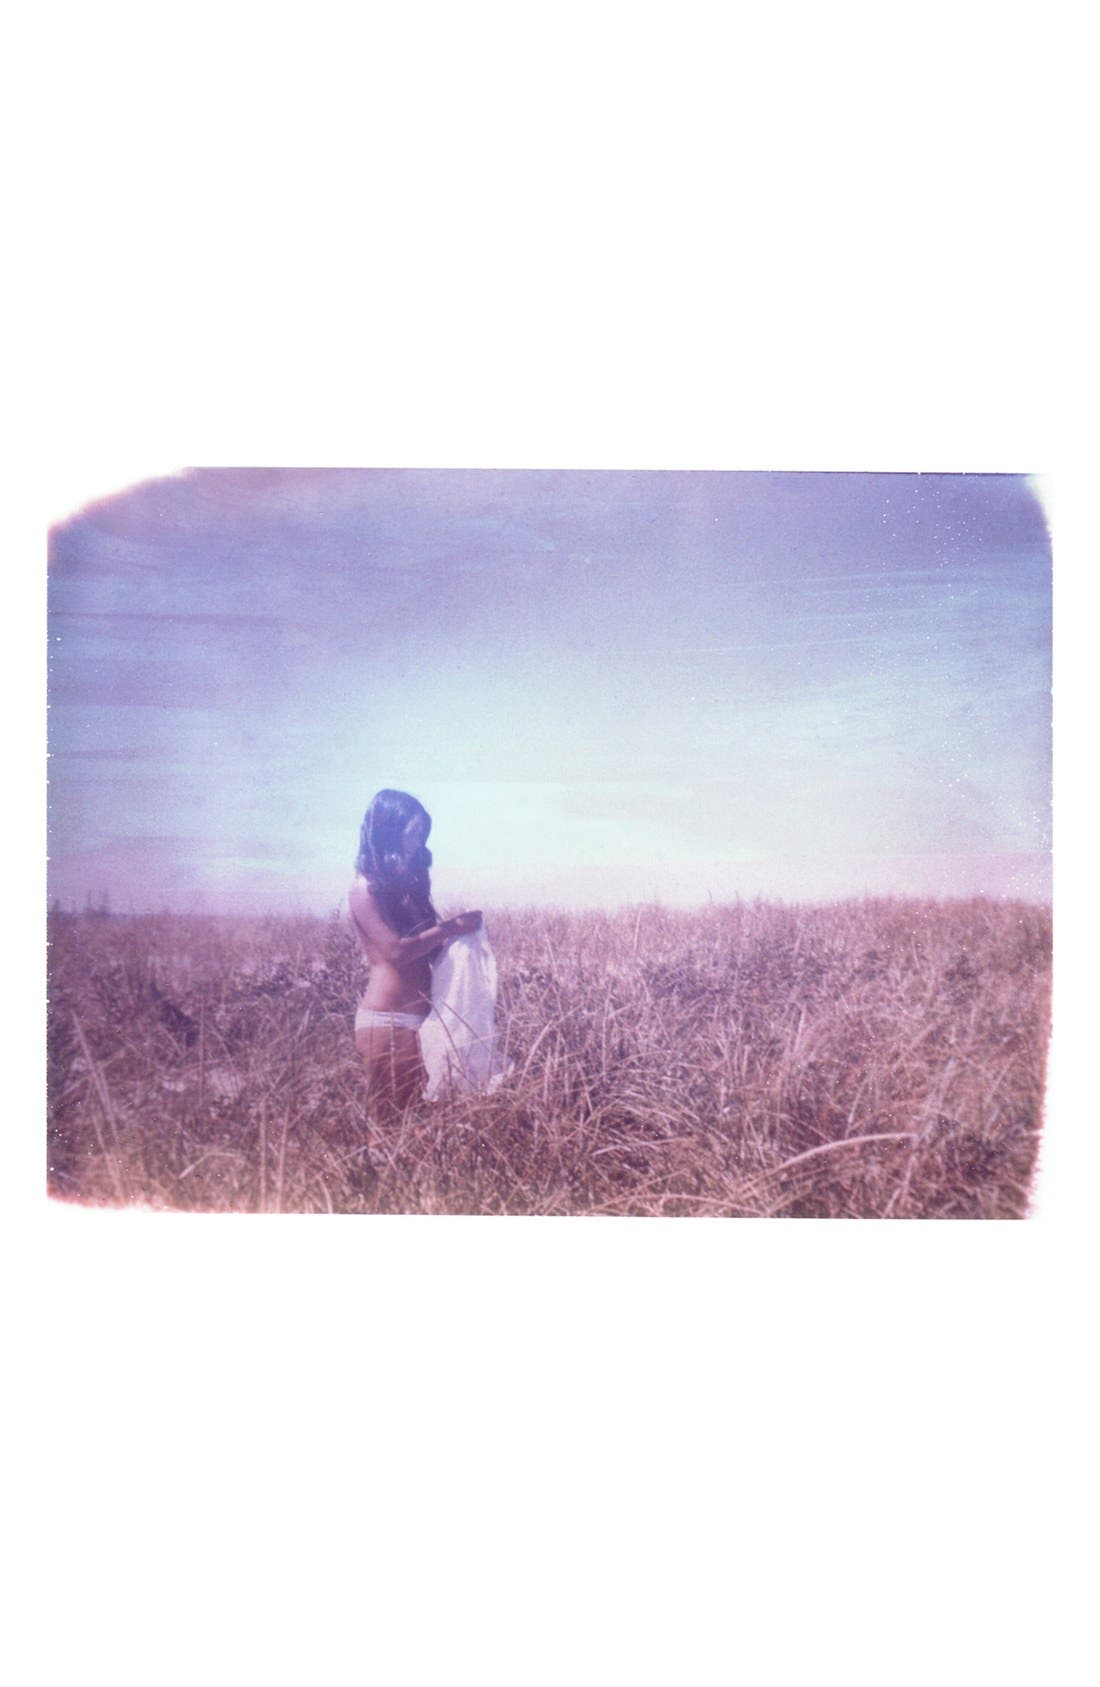 Alternate Image 1 Selected - She Hit Pause Studios 'Girl in Field' Wall Art